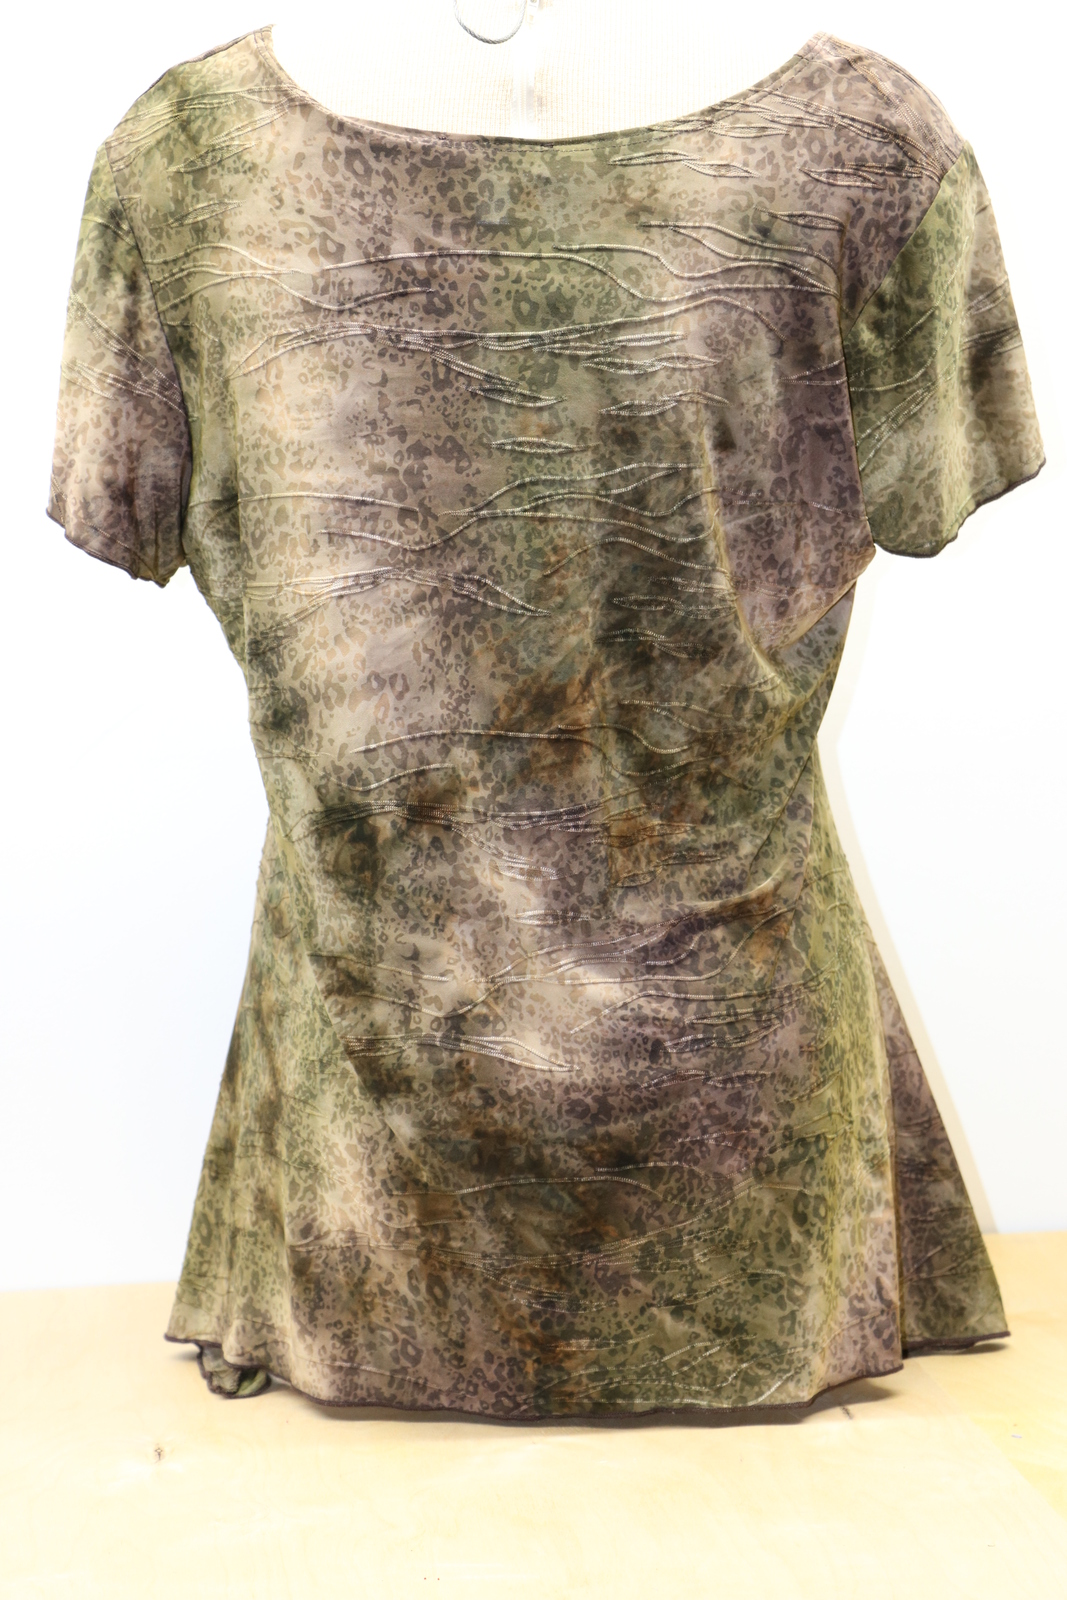 DressBarn Woman's XL Olive Green Jeweled Polyester Geometric Blouse Dress Barn